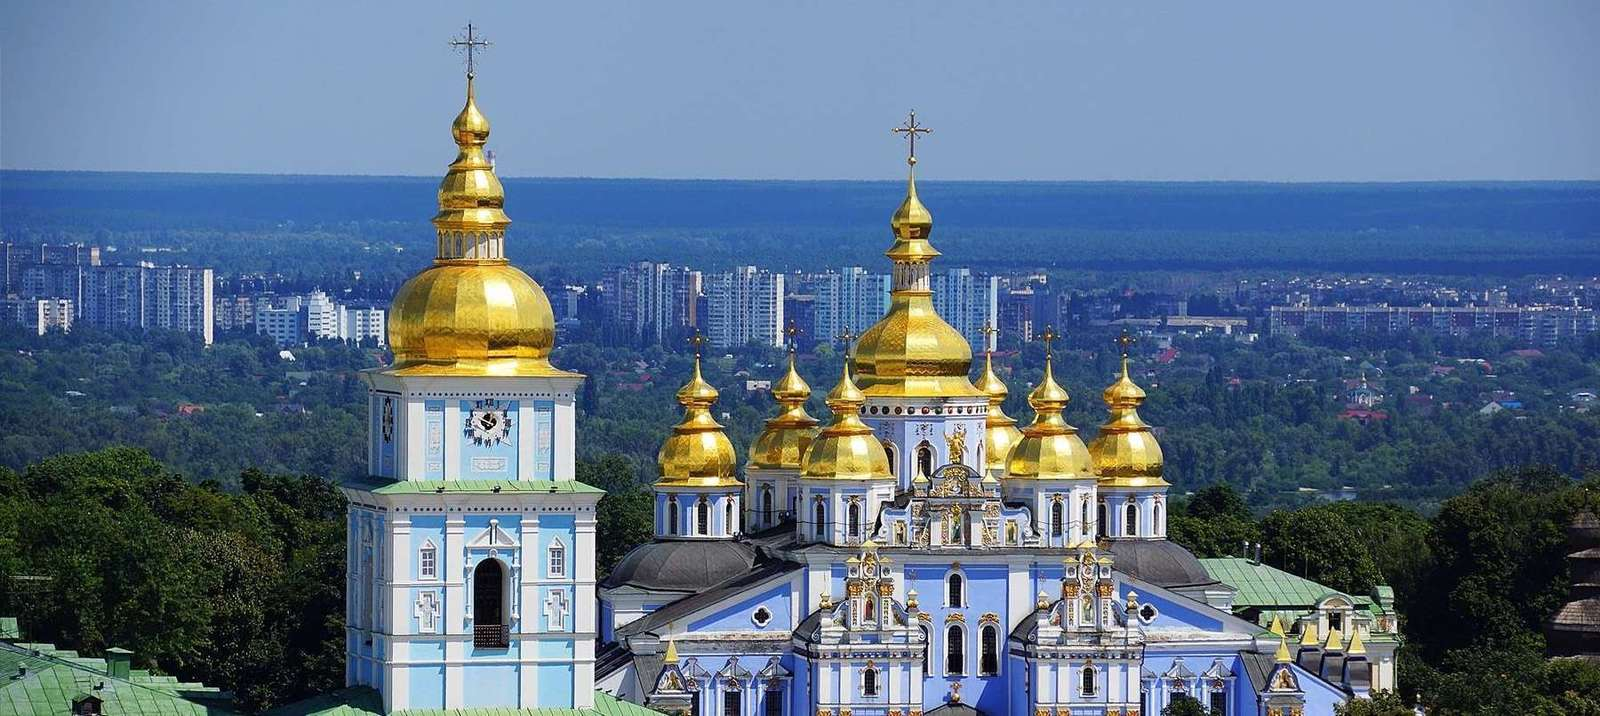 kiev ukraine tourist attractions